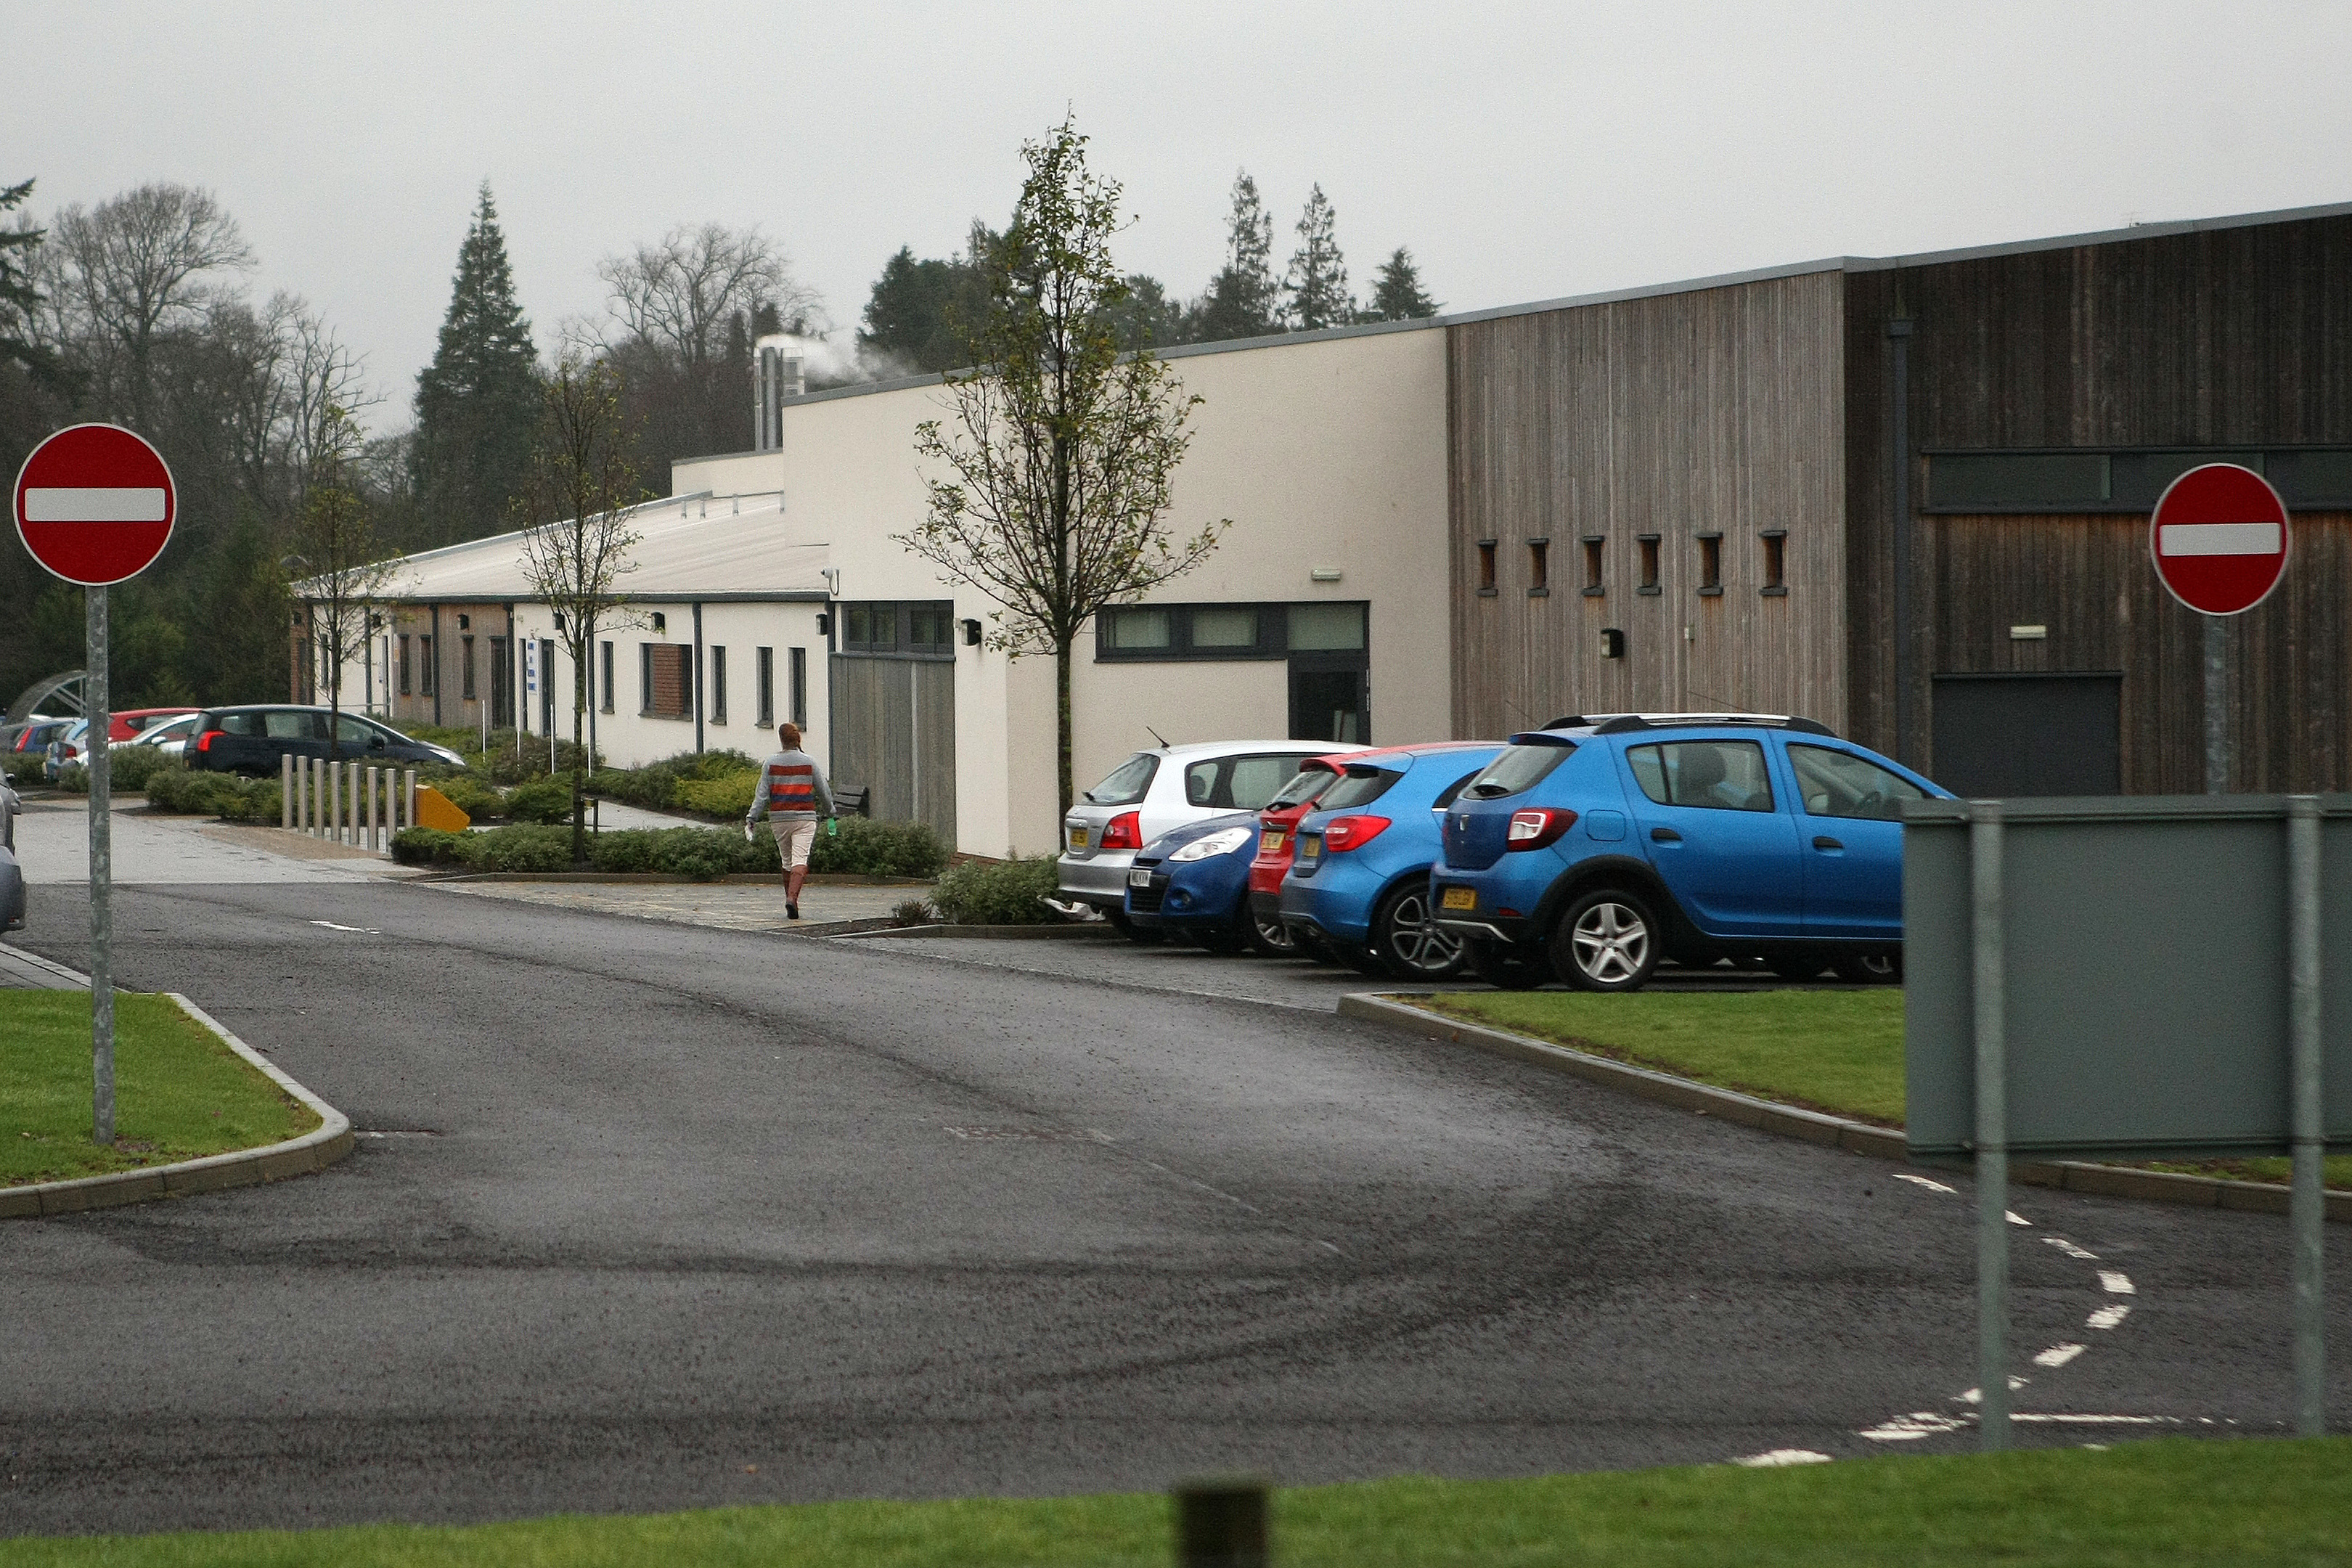 The Mulberry Unit at Stracathro Hospital is to be closed in favour of Carseview in Dundee